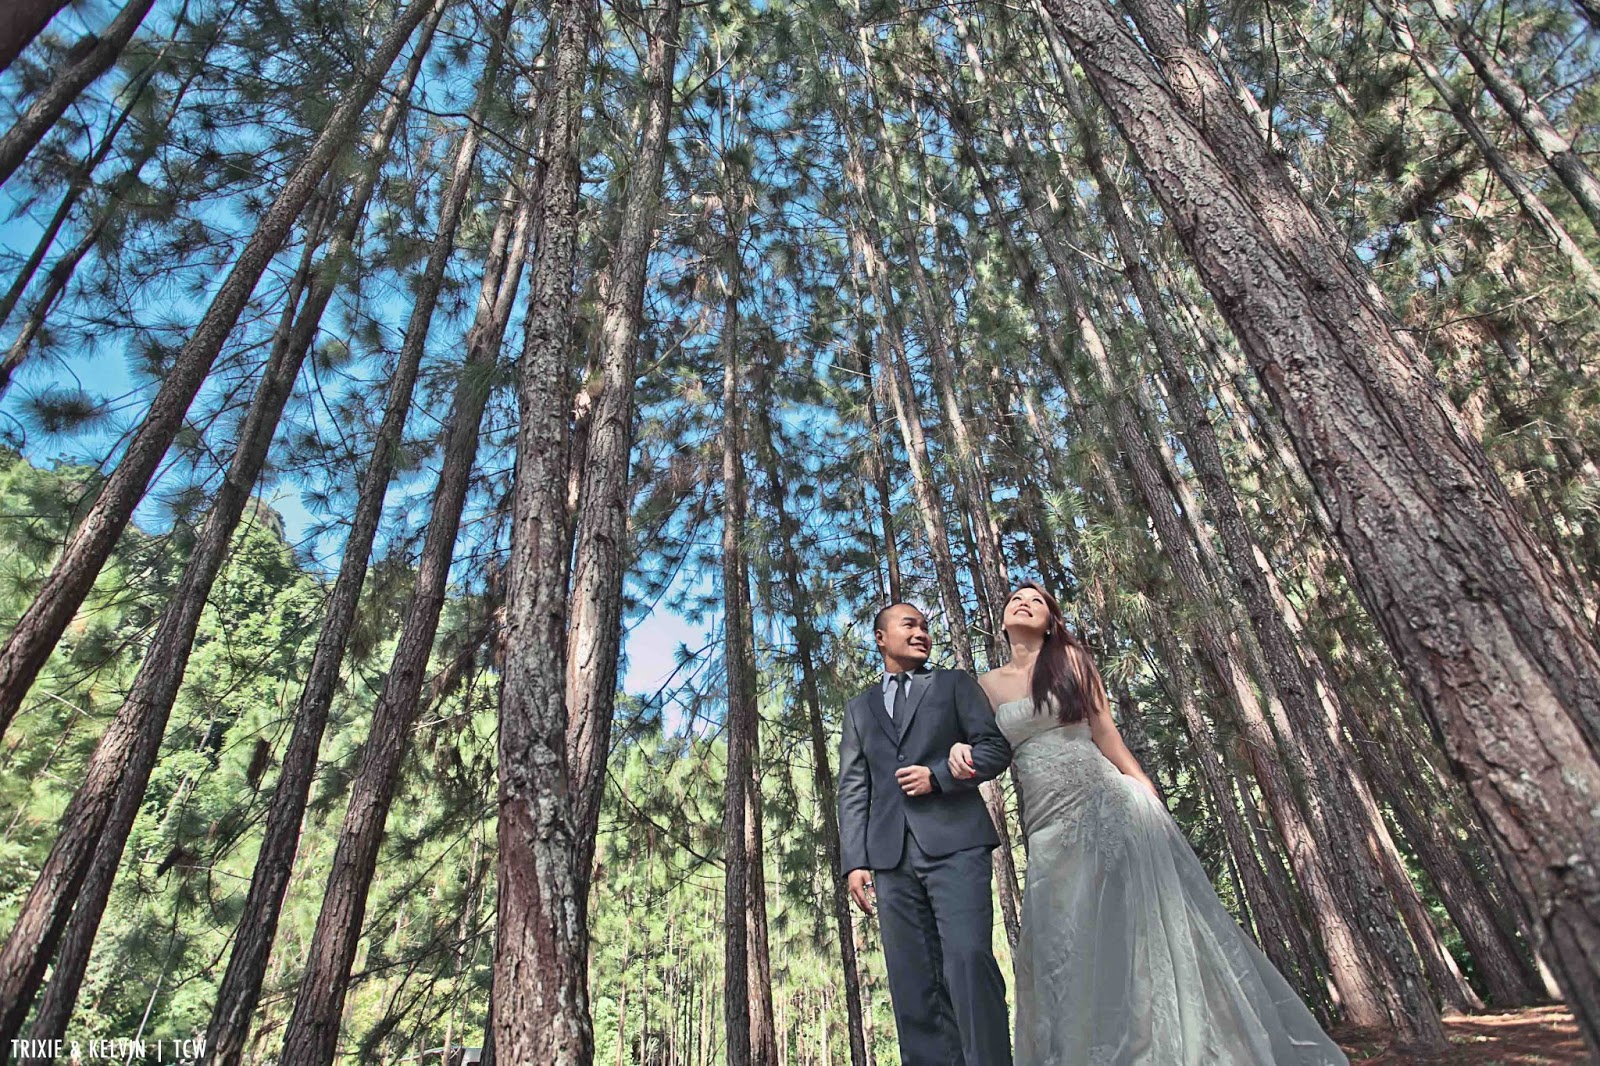 Pre-wedding photoshoot in Malaysia (FRIM, Selangor). Photo by TCW Photography